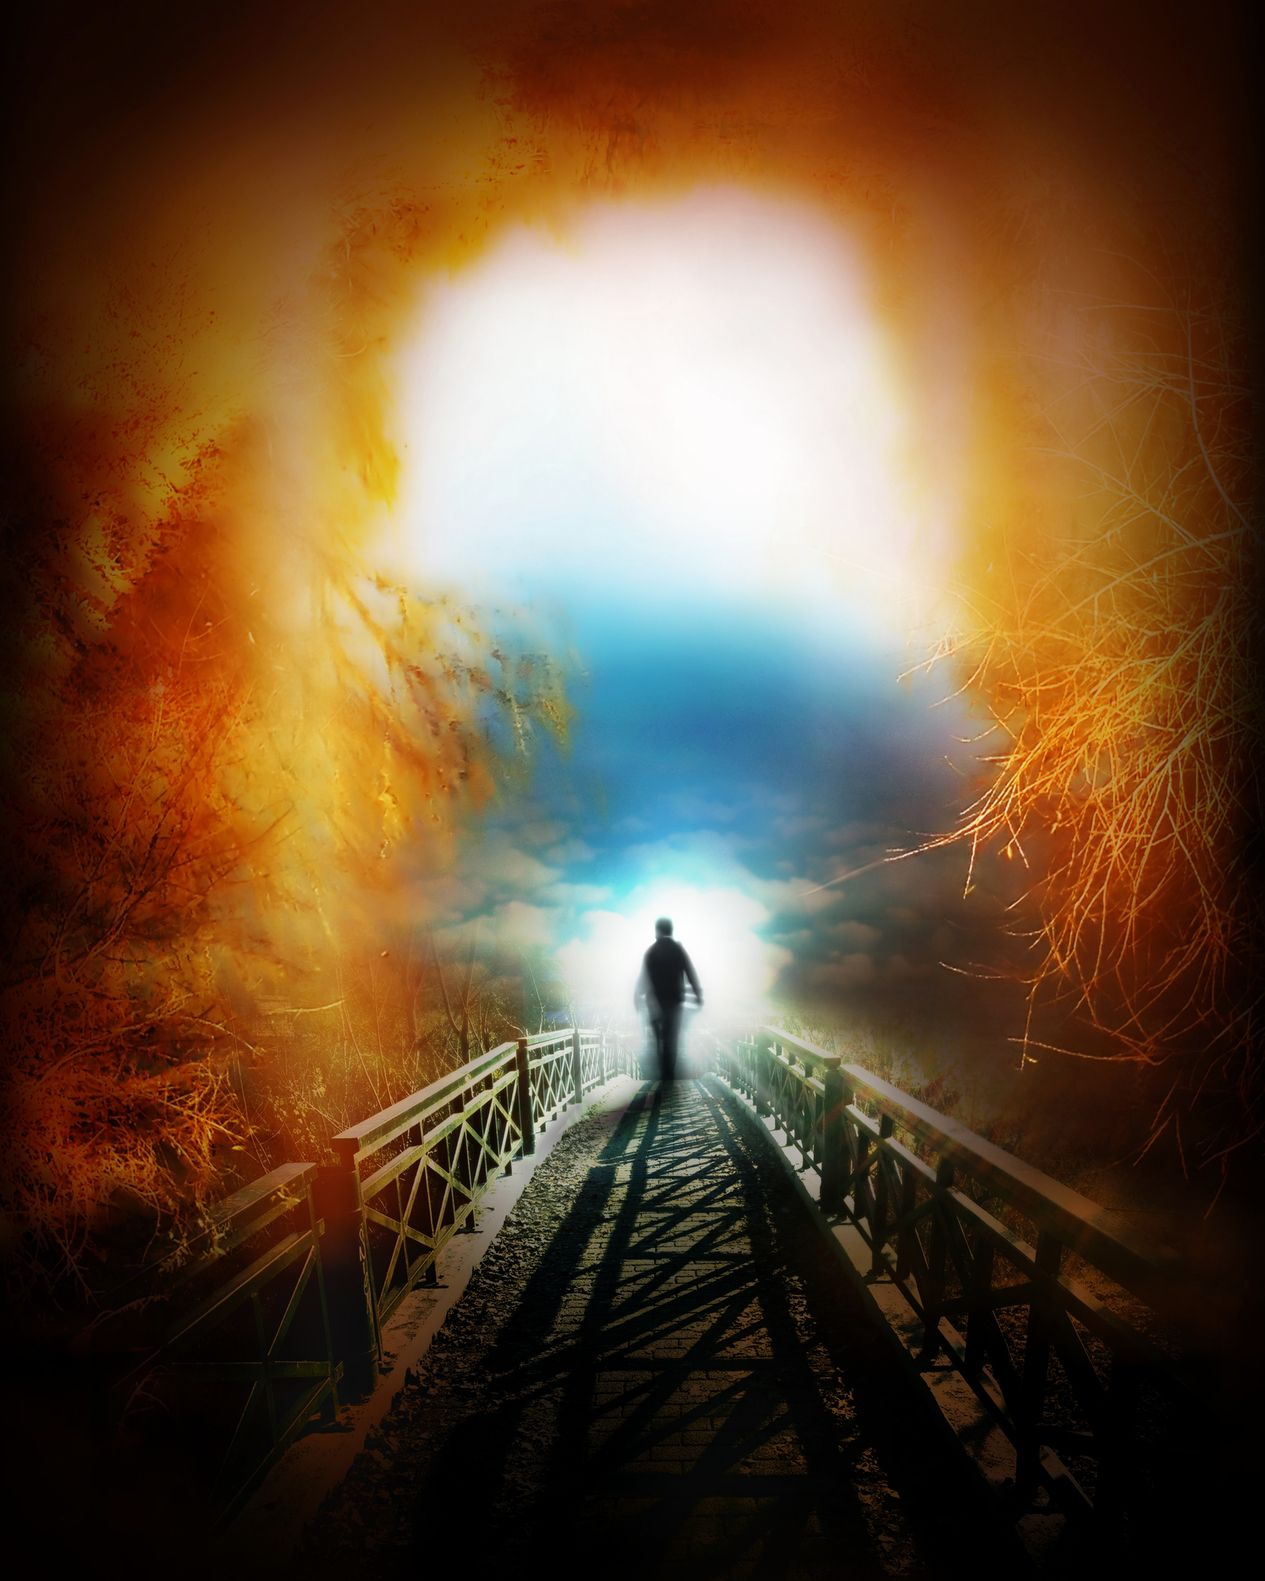 Philosophy for Beginners: The Theology of Death